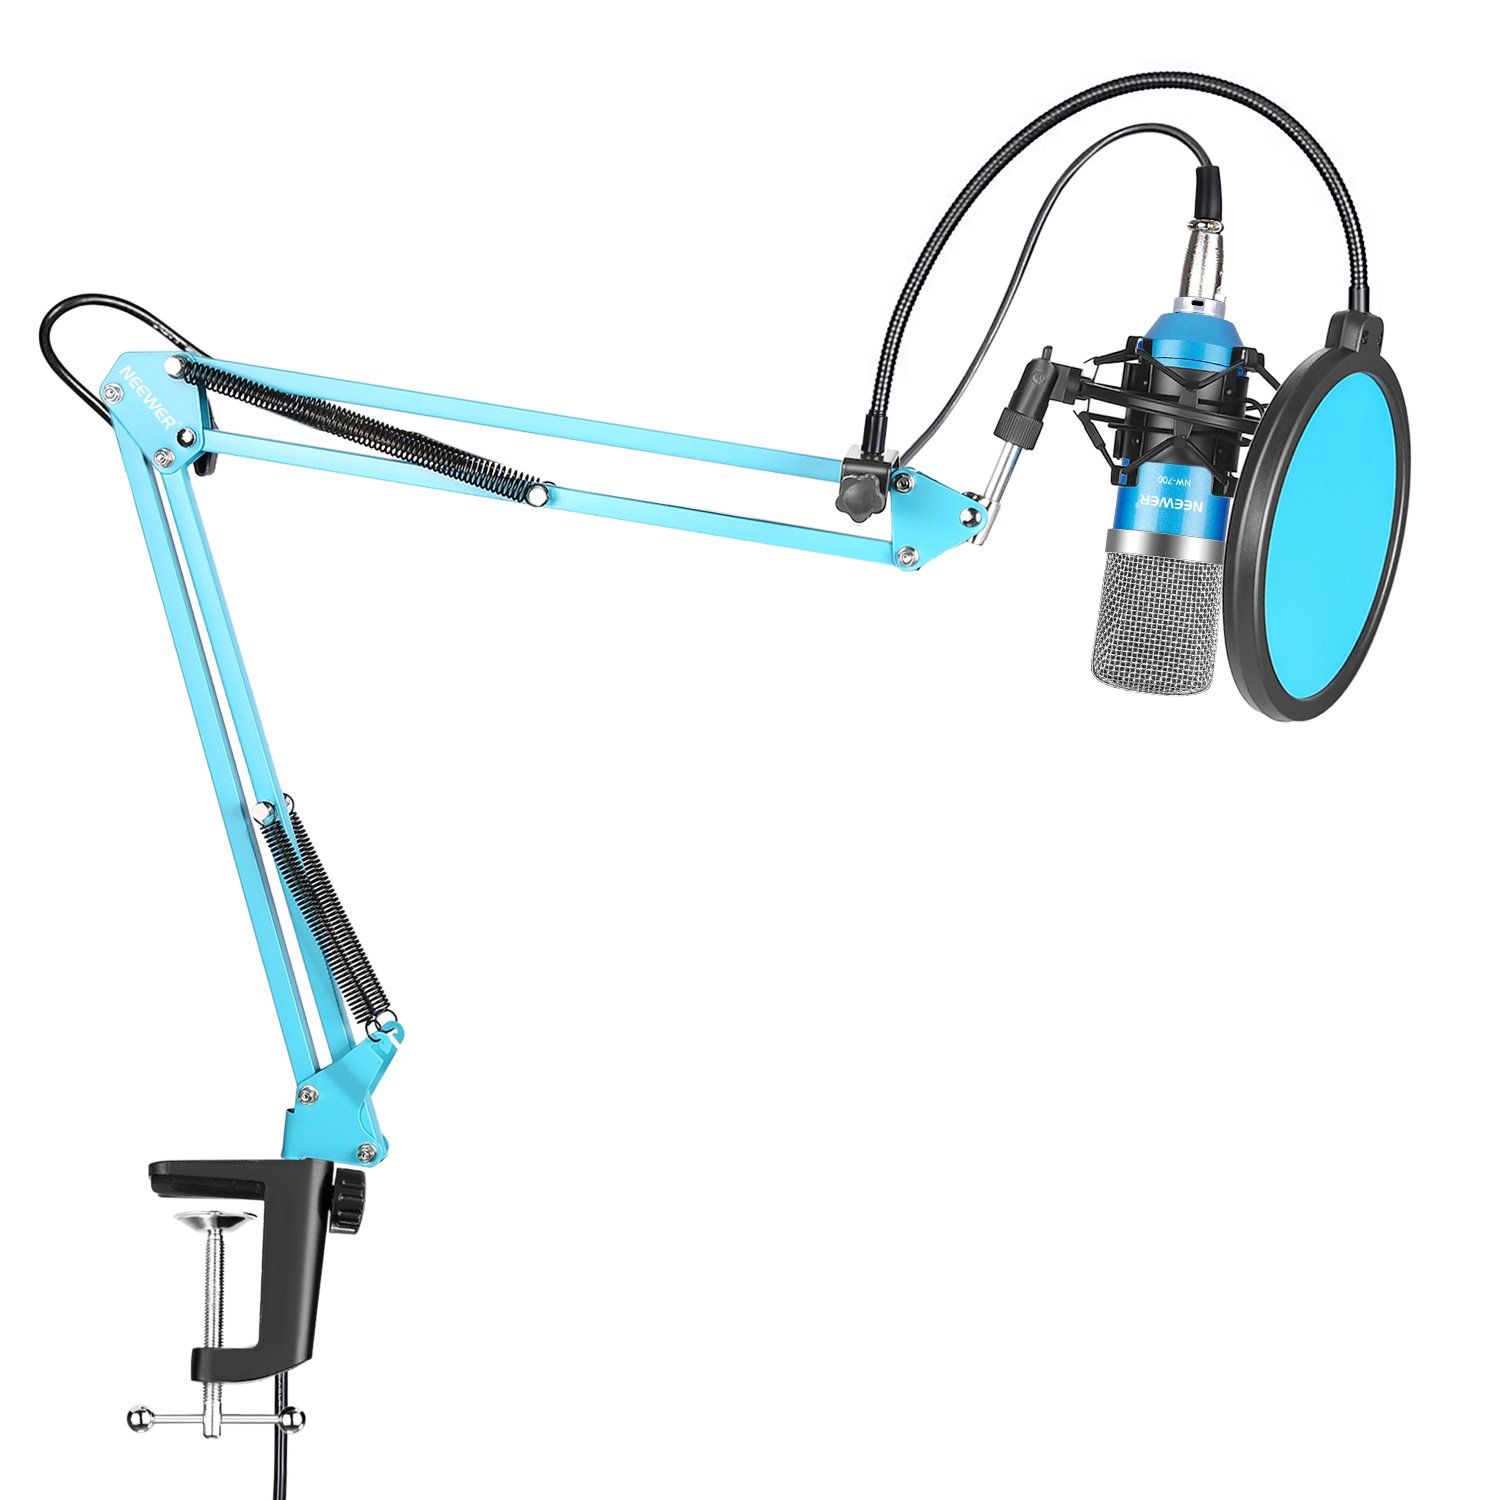 Neewer Professional Studio Condenser Microphone Kit for Computer Studio Broadcasting Recording, Includes NW-700 Microphone (Blue), Black Suspension Boom Scissor Arm Stand, Shock Mount and Pop Filter by Neewer